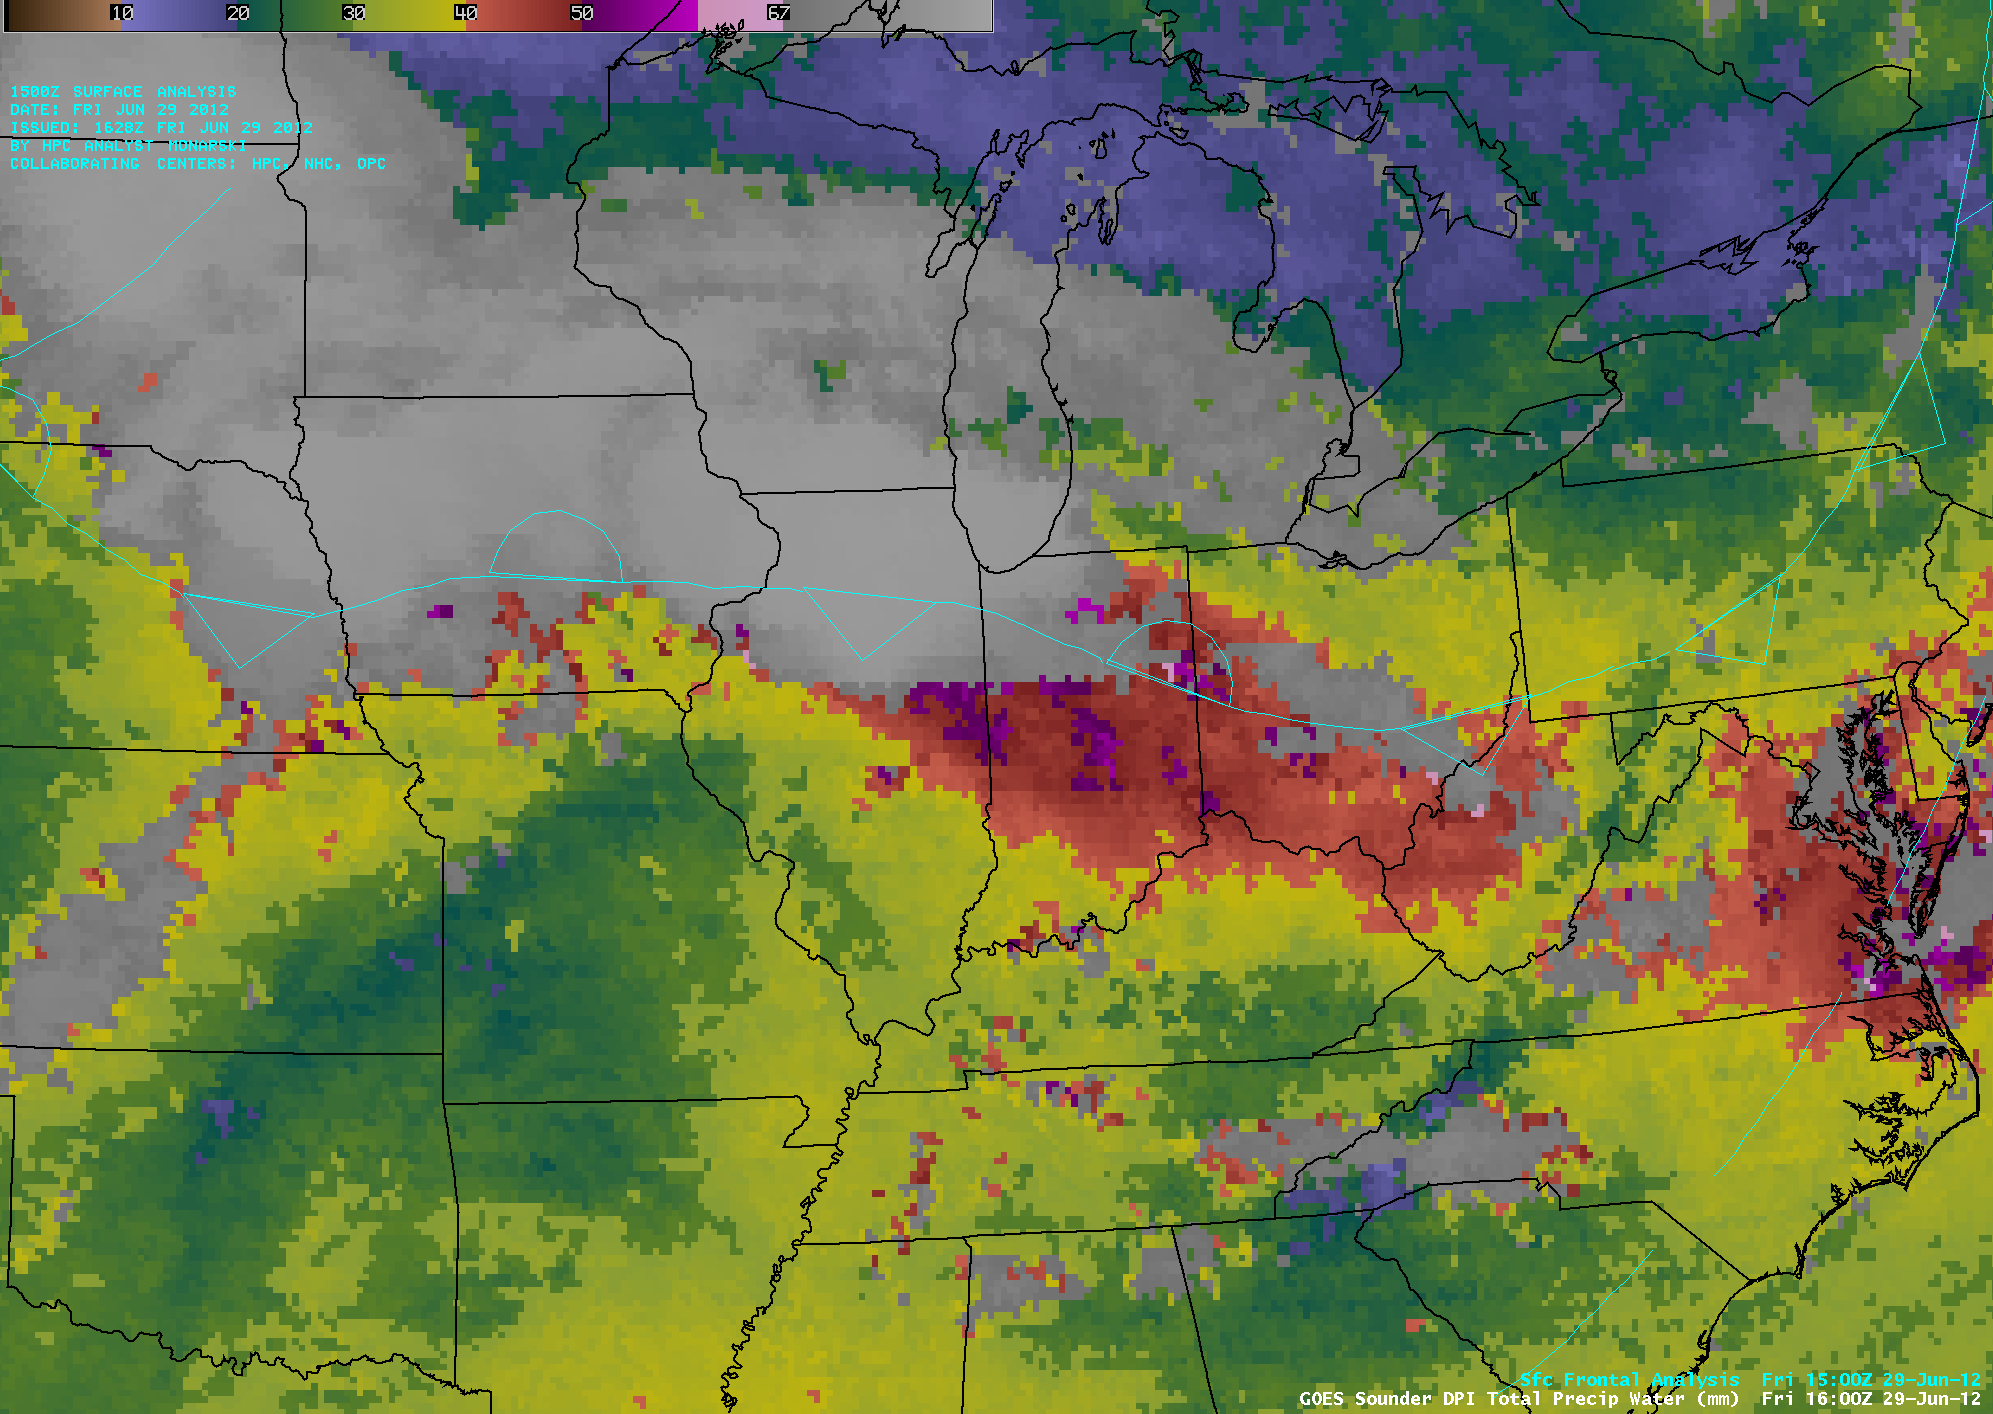 GOES-13 sounder Total Precipitable Water derived product imgery (click image to play animation)